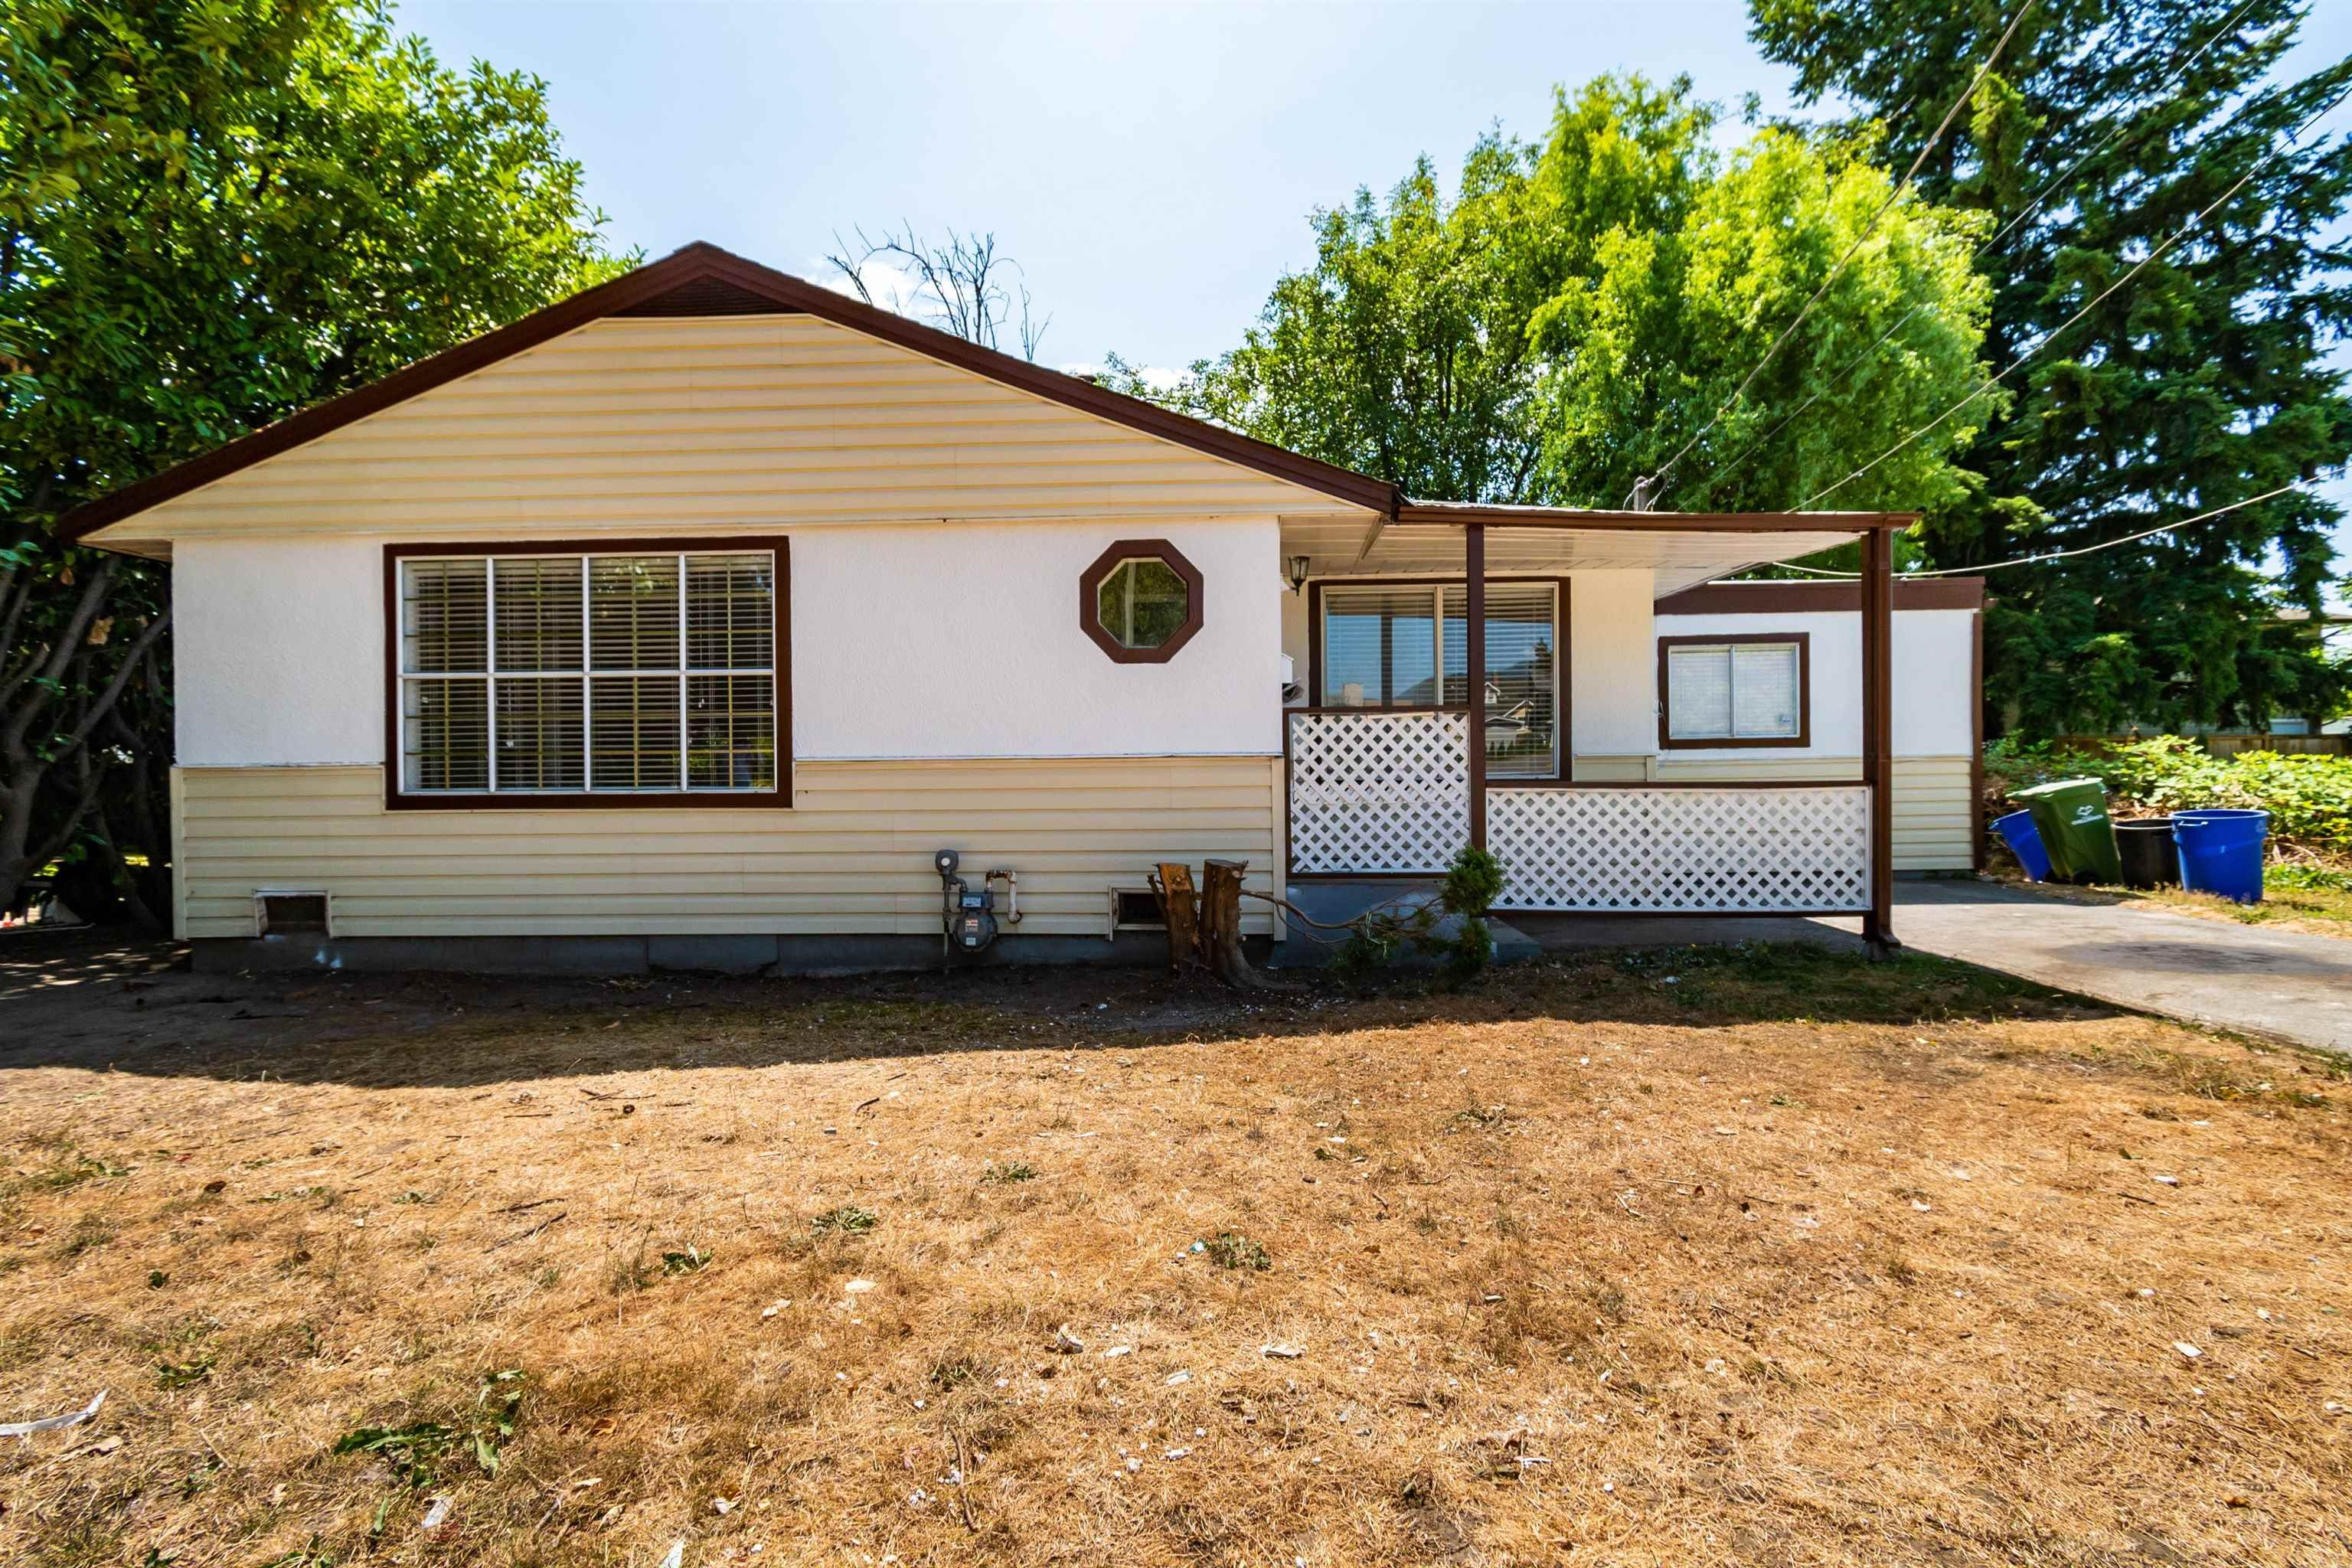 Main Photo: 46228 FIRST Avenue in Chilliwack: Chilliwack E Young-Yale House for sale : MLS®# R2613379